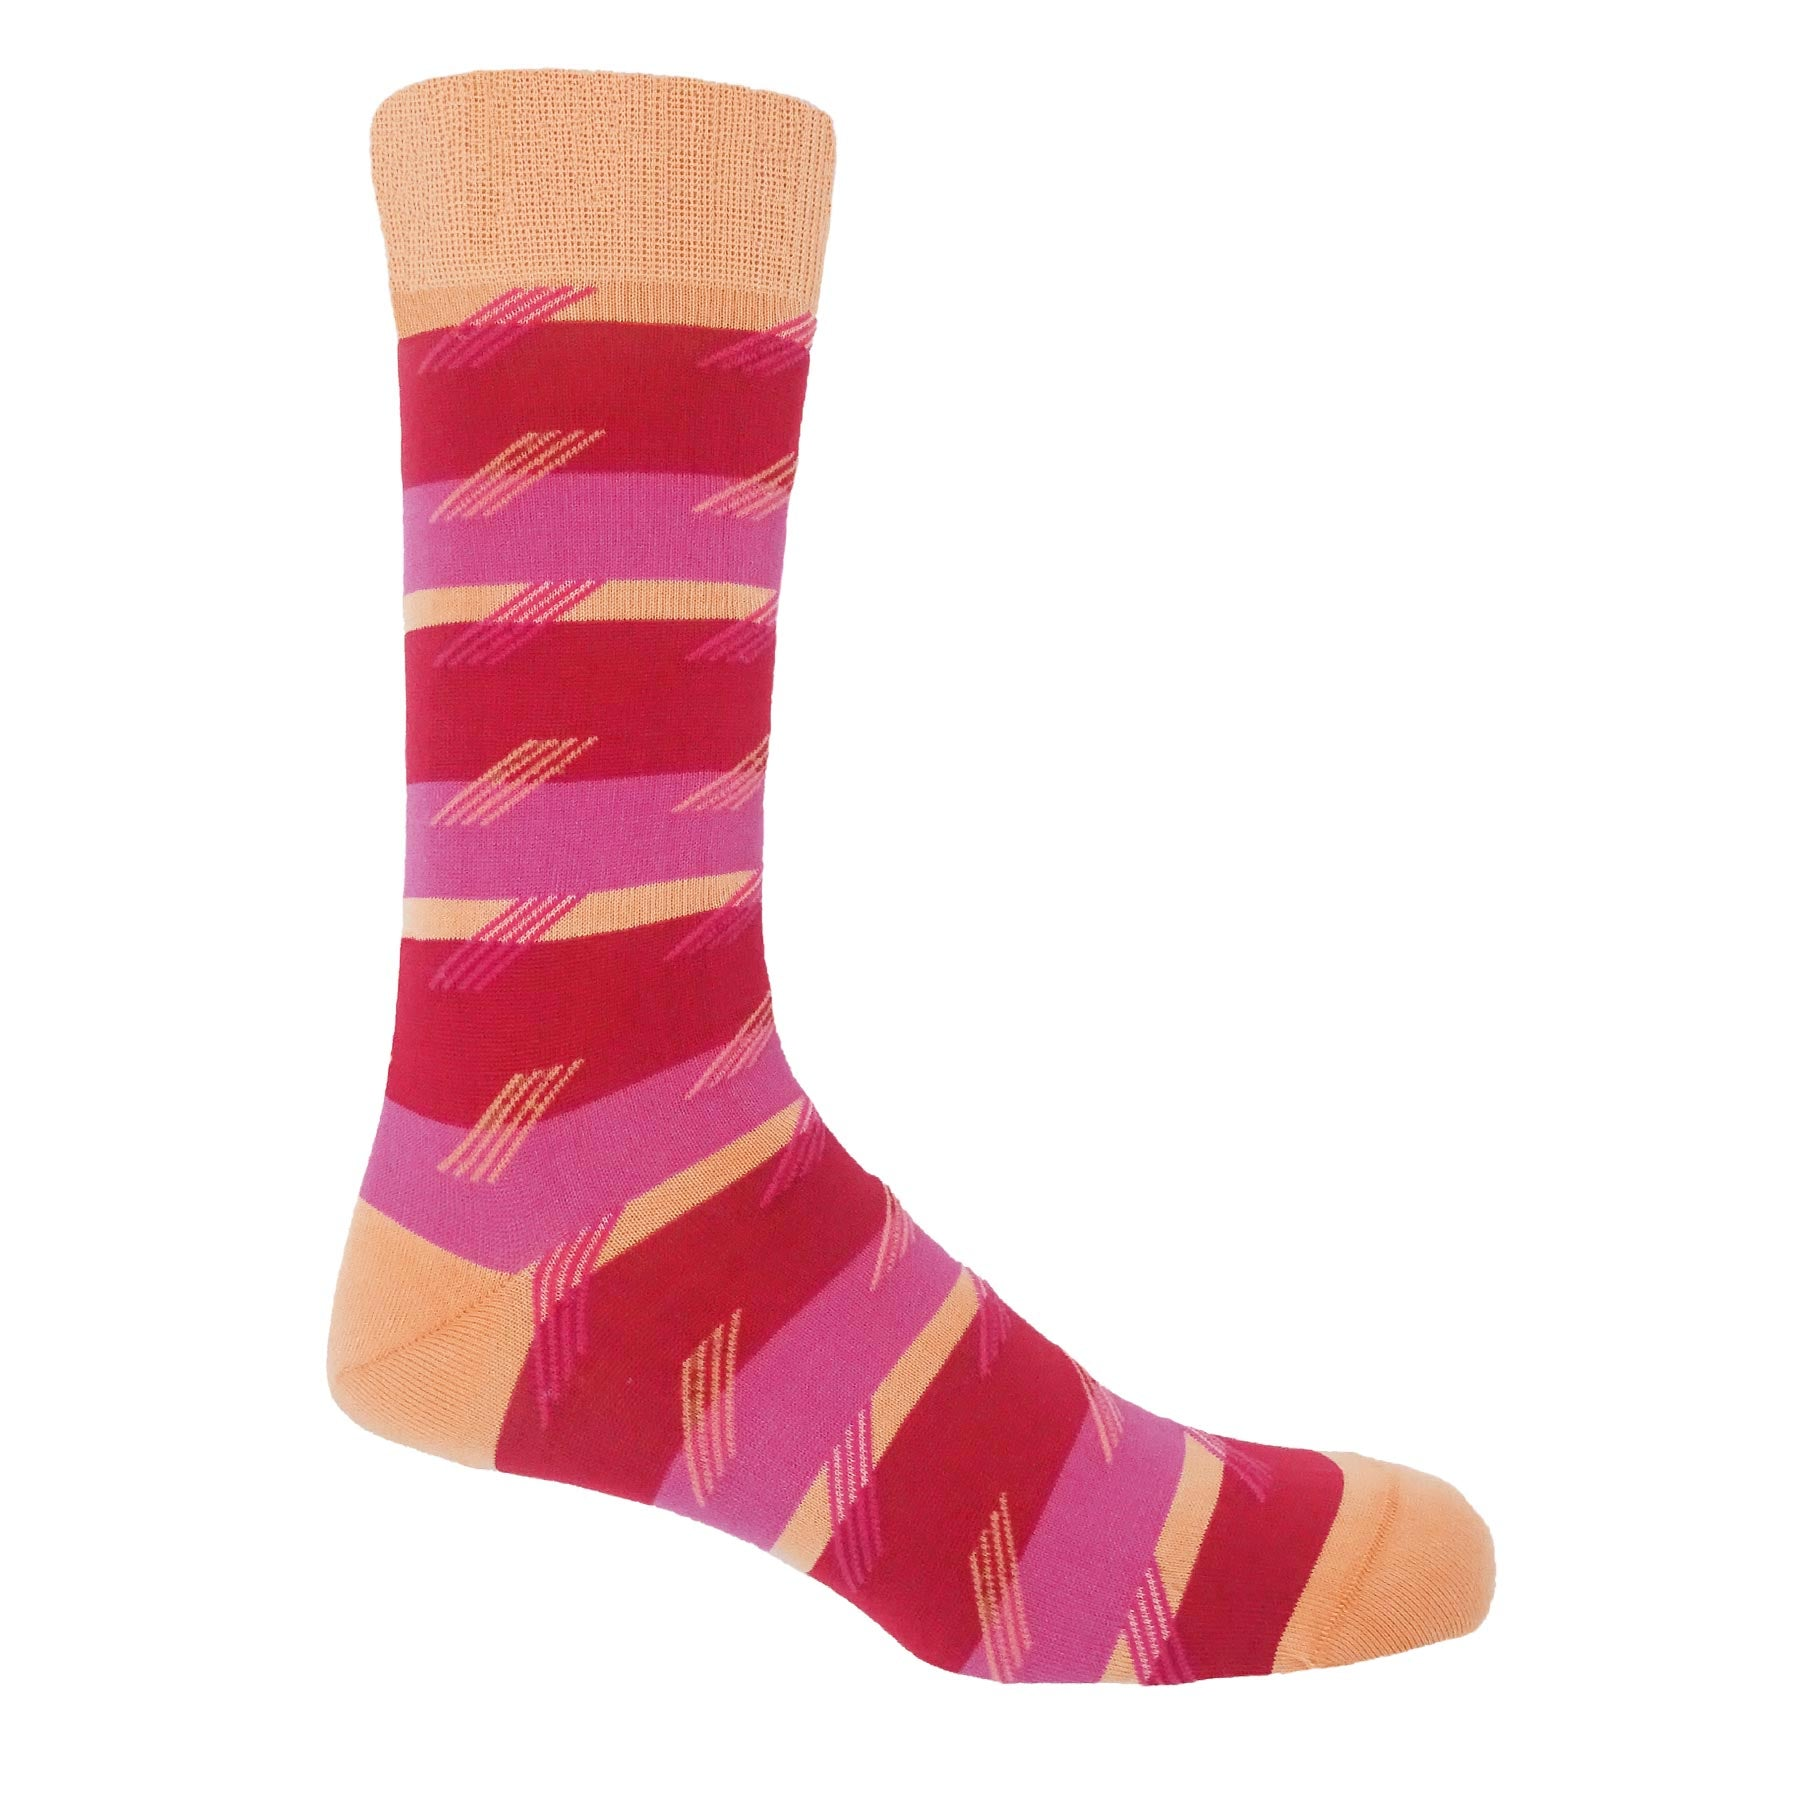 Diagonal Stripe Men's Socks - Rose